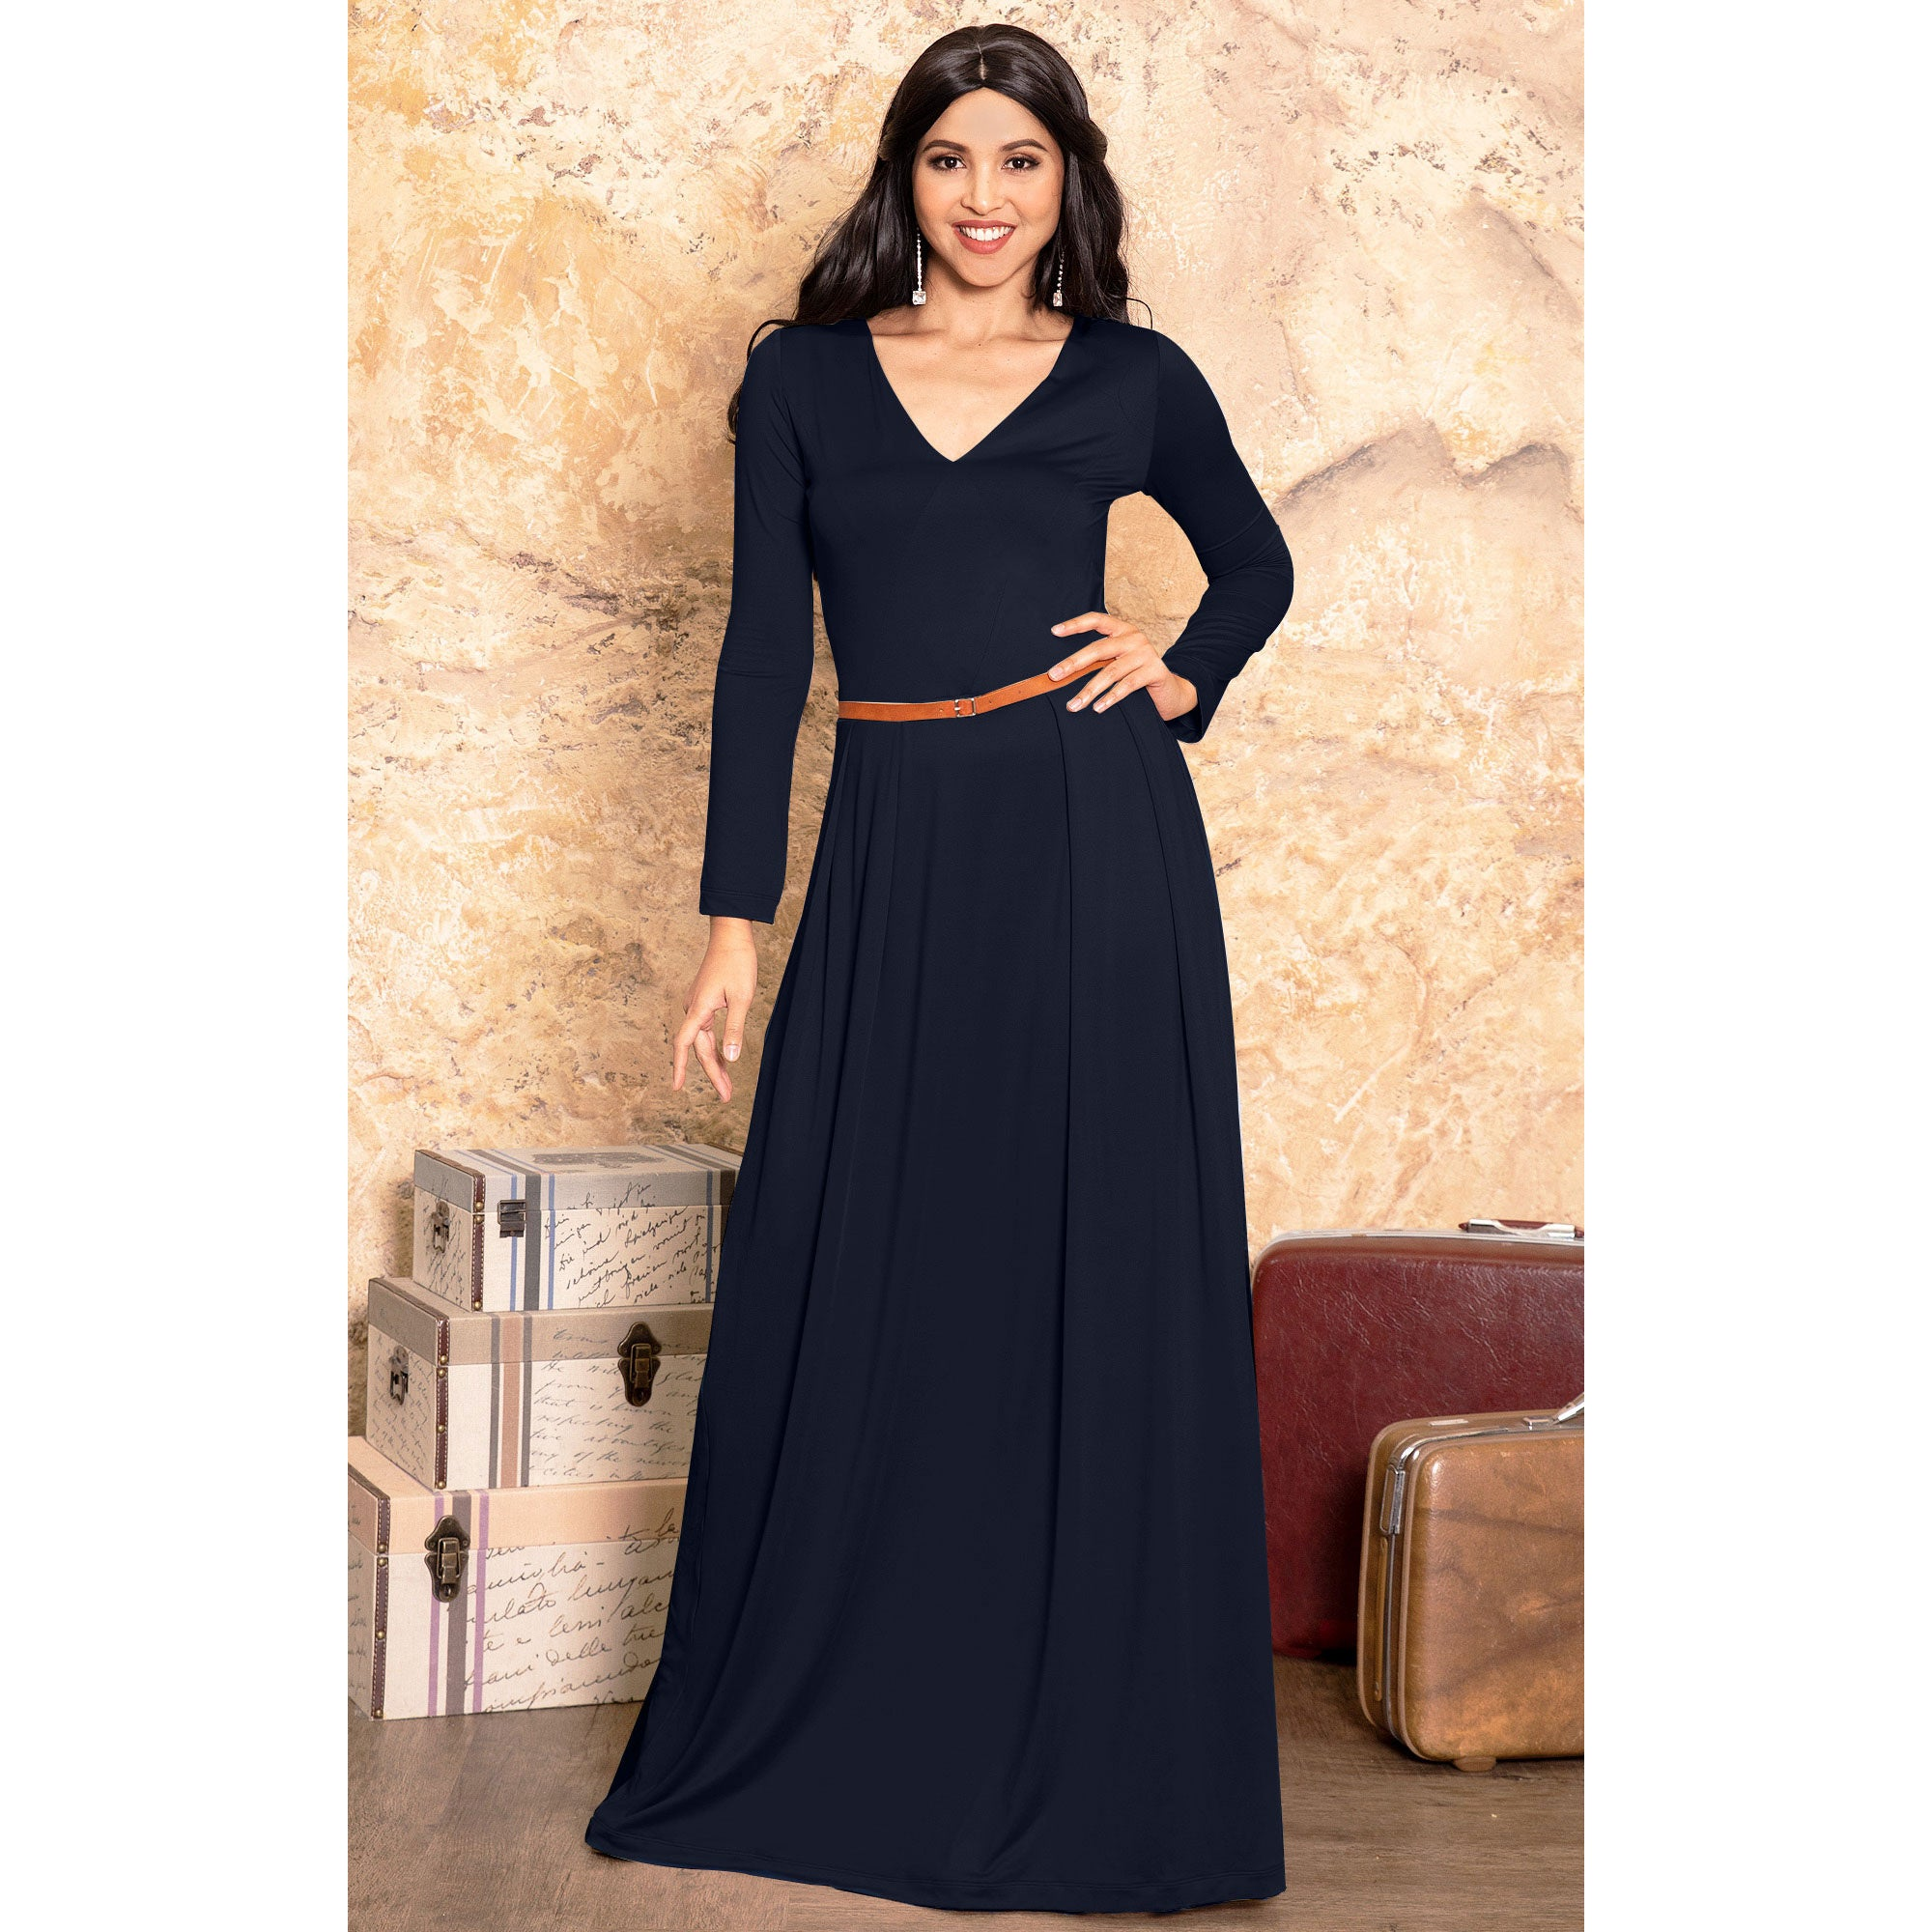 aea7839aaaa6 KOH KOH Long Sleeve Elegant Evening Flowy Dressy Fall Maxi Dress ...